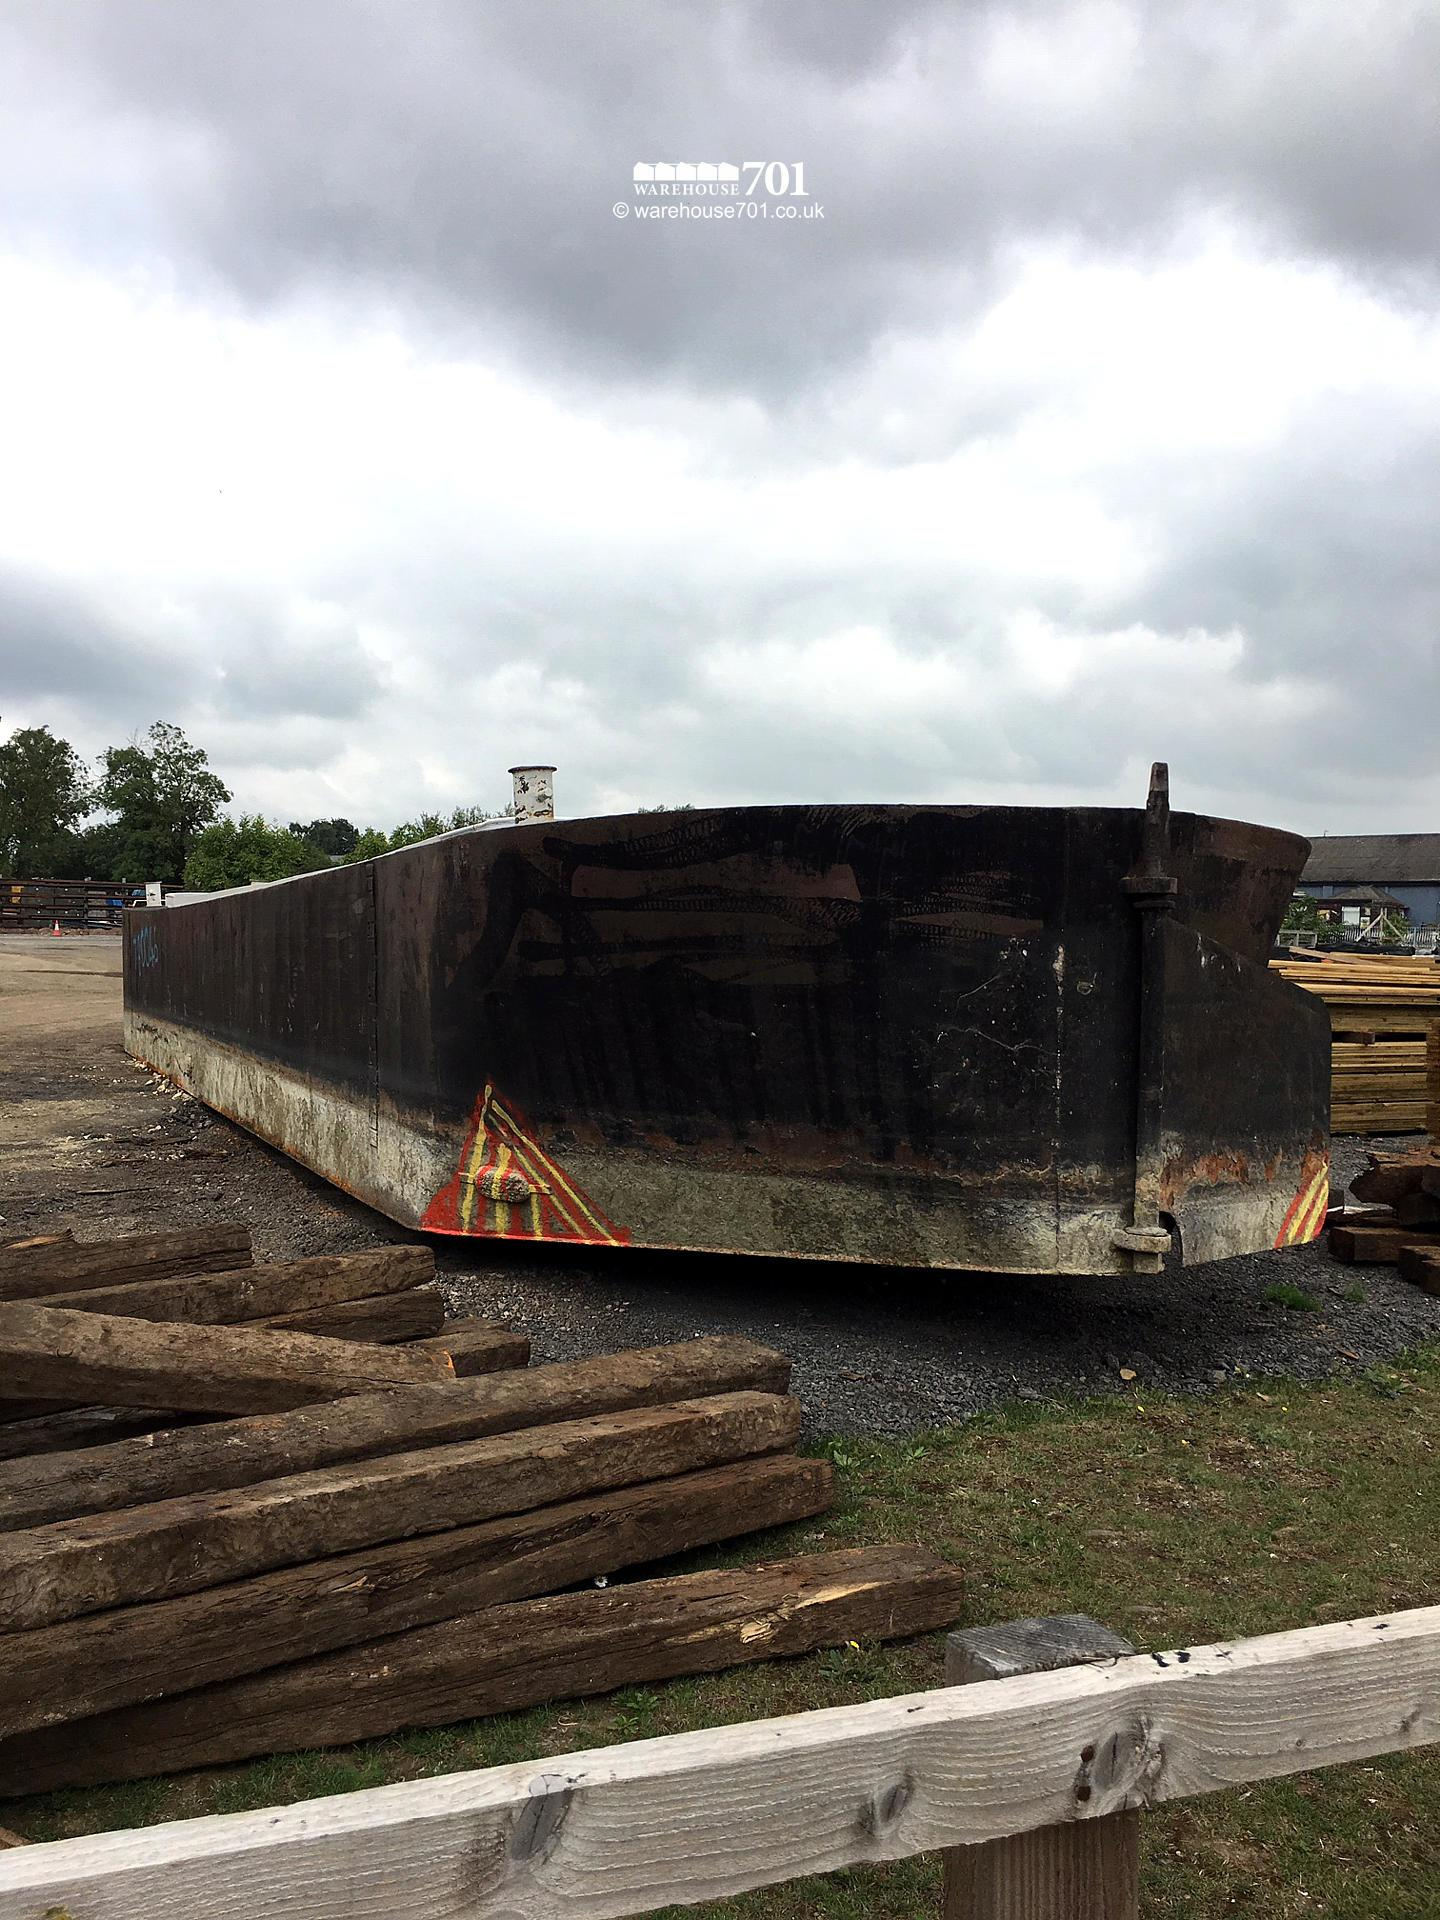 Salvaged Large Steel Hull Barge or Boat